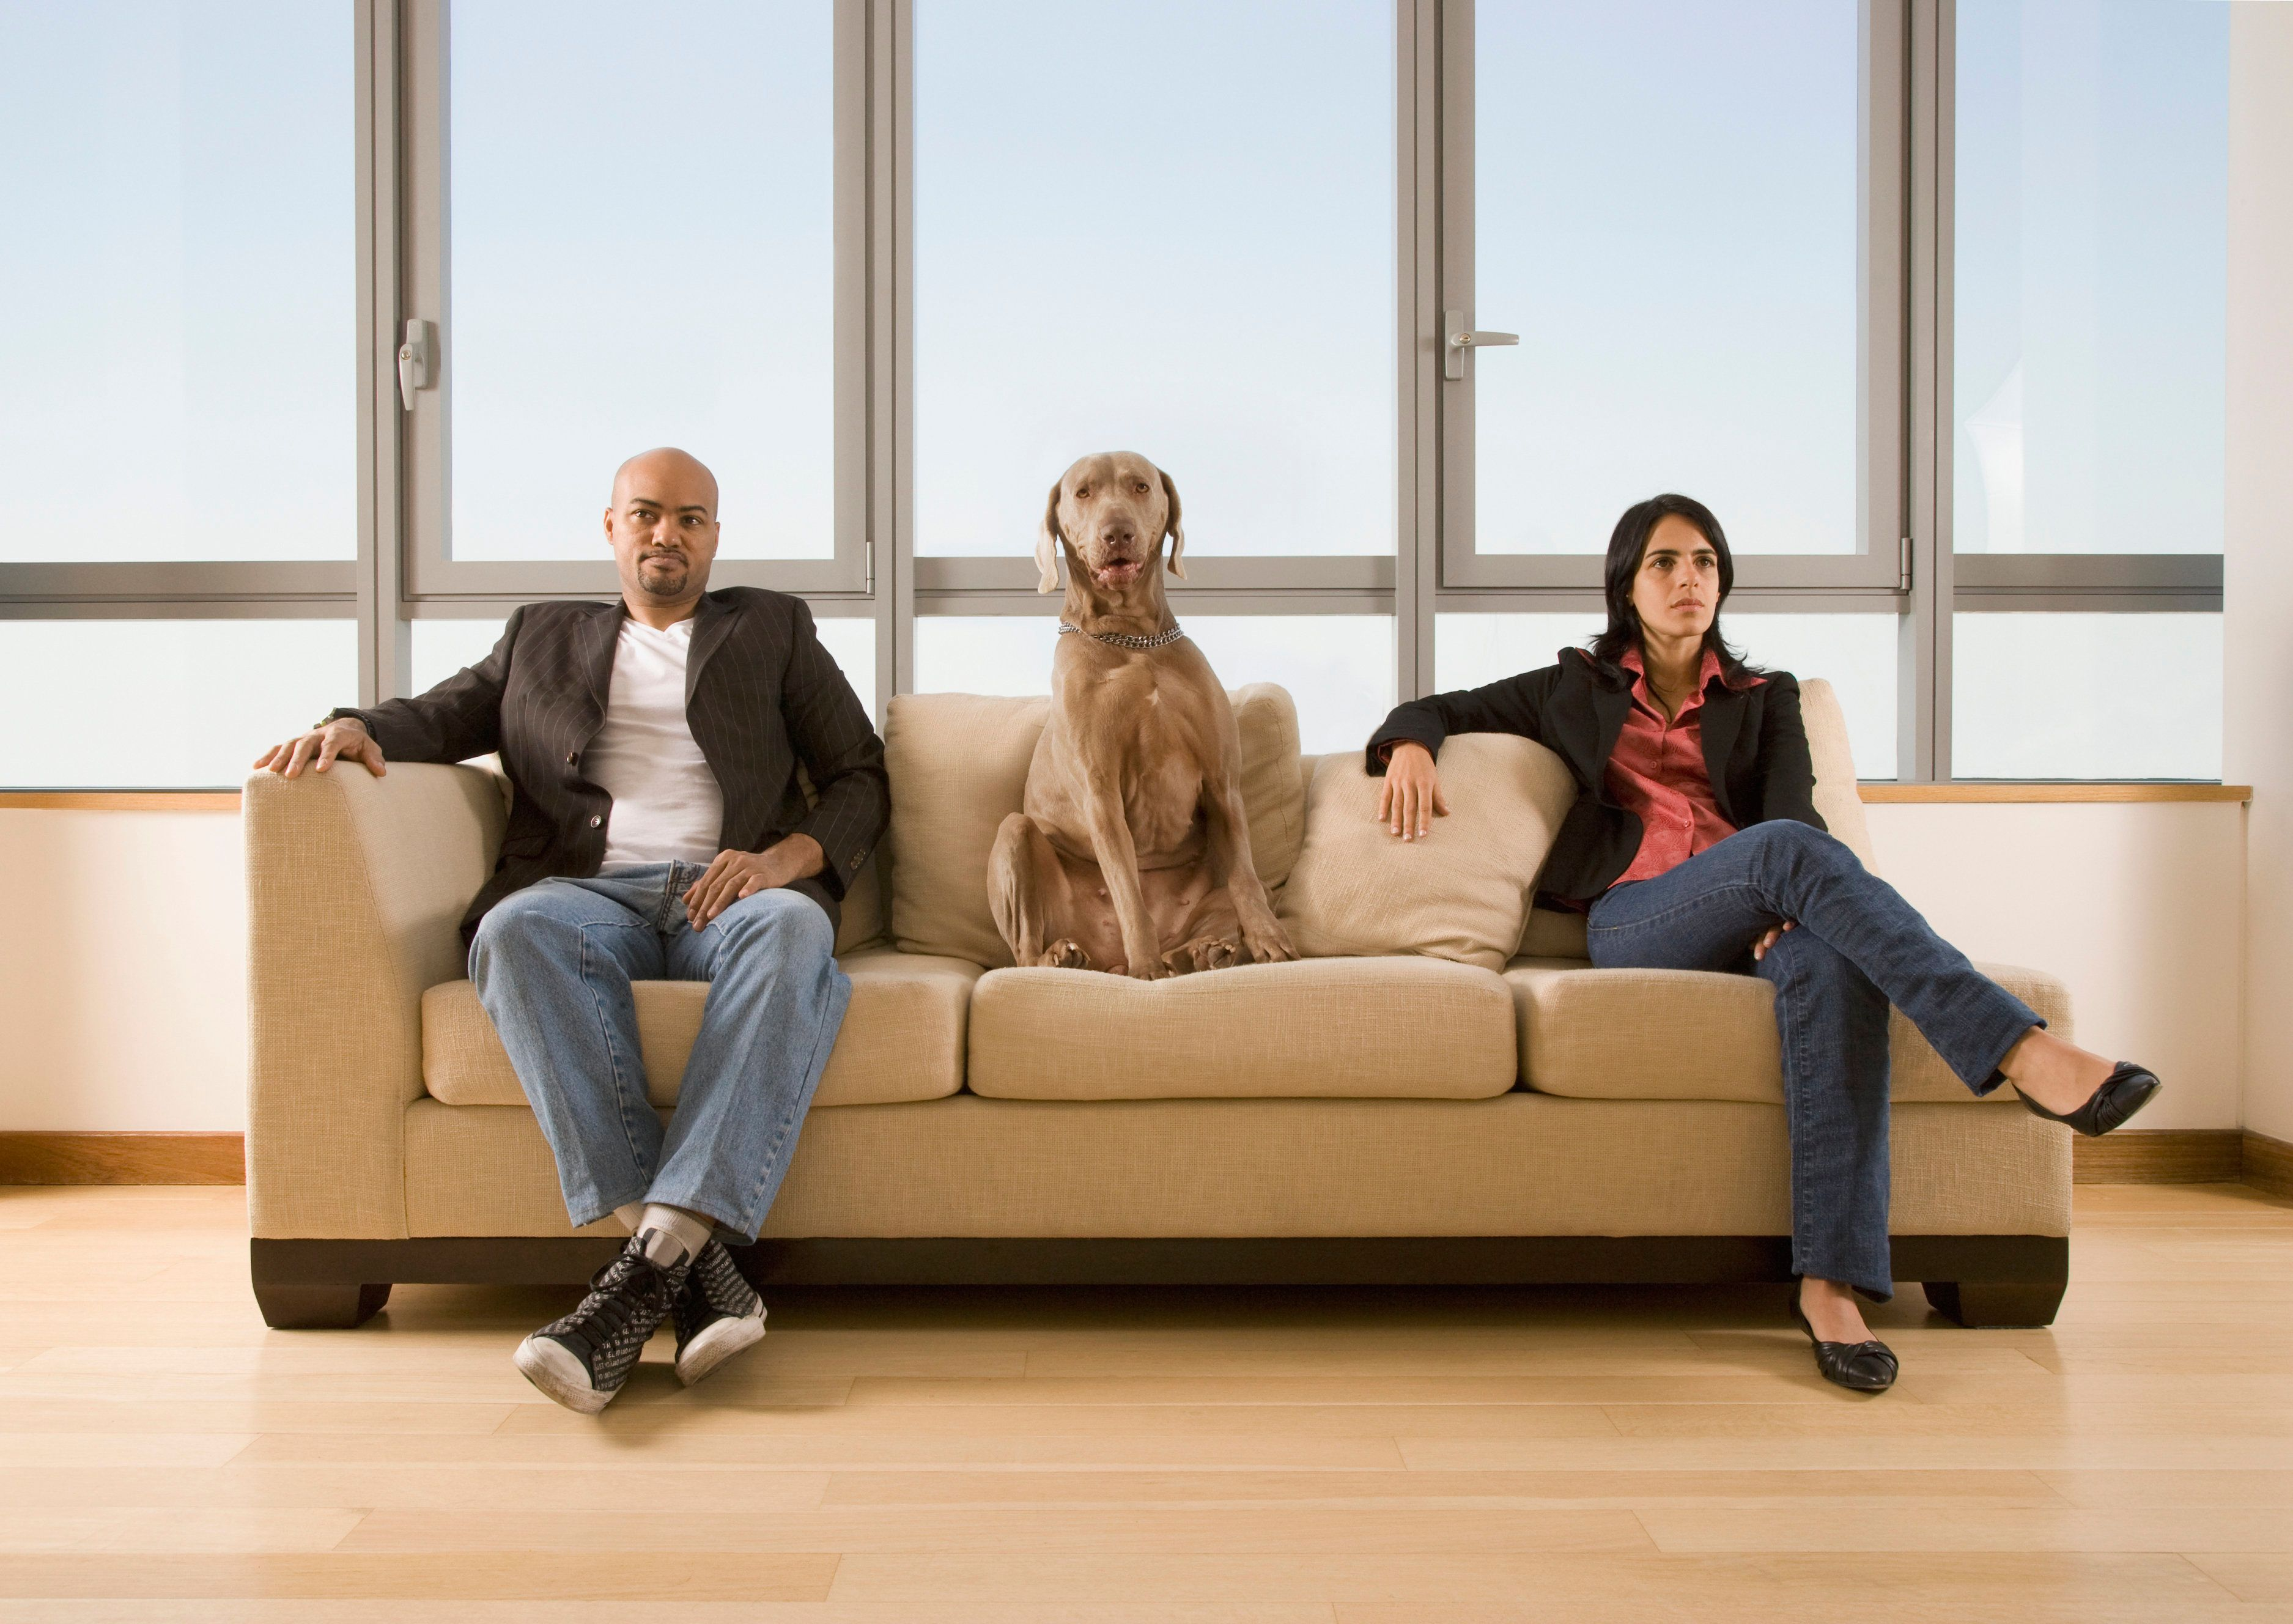 Thoughpets are generally considered property under divorcelaws, most people do not see their pets as the same as furniture.